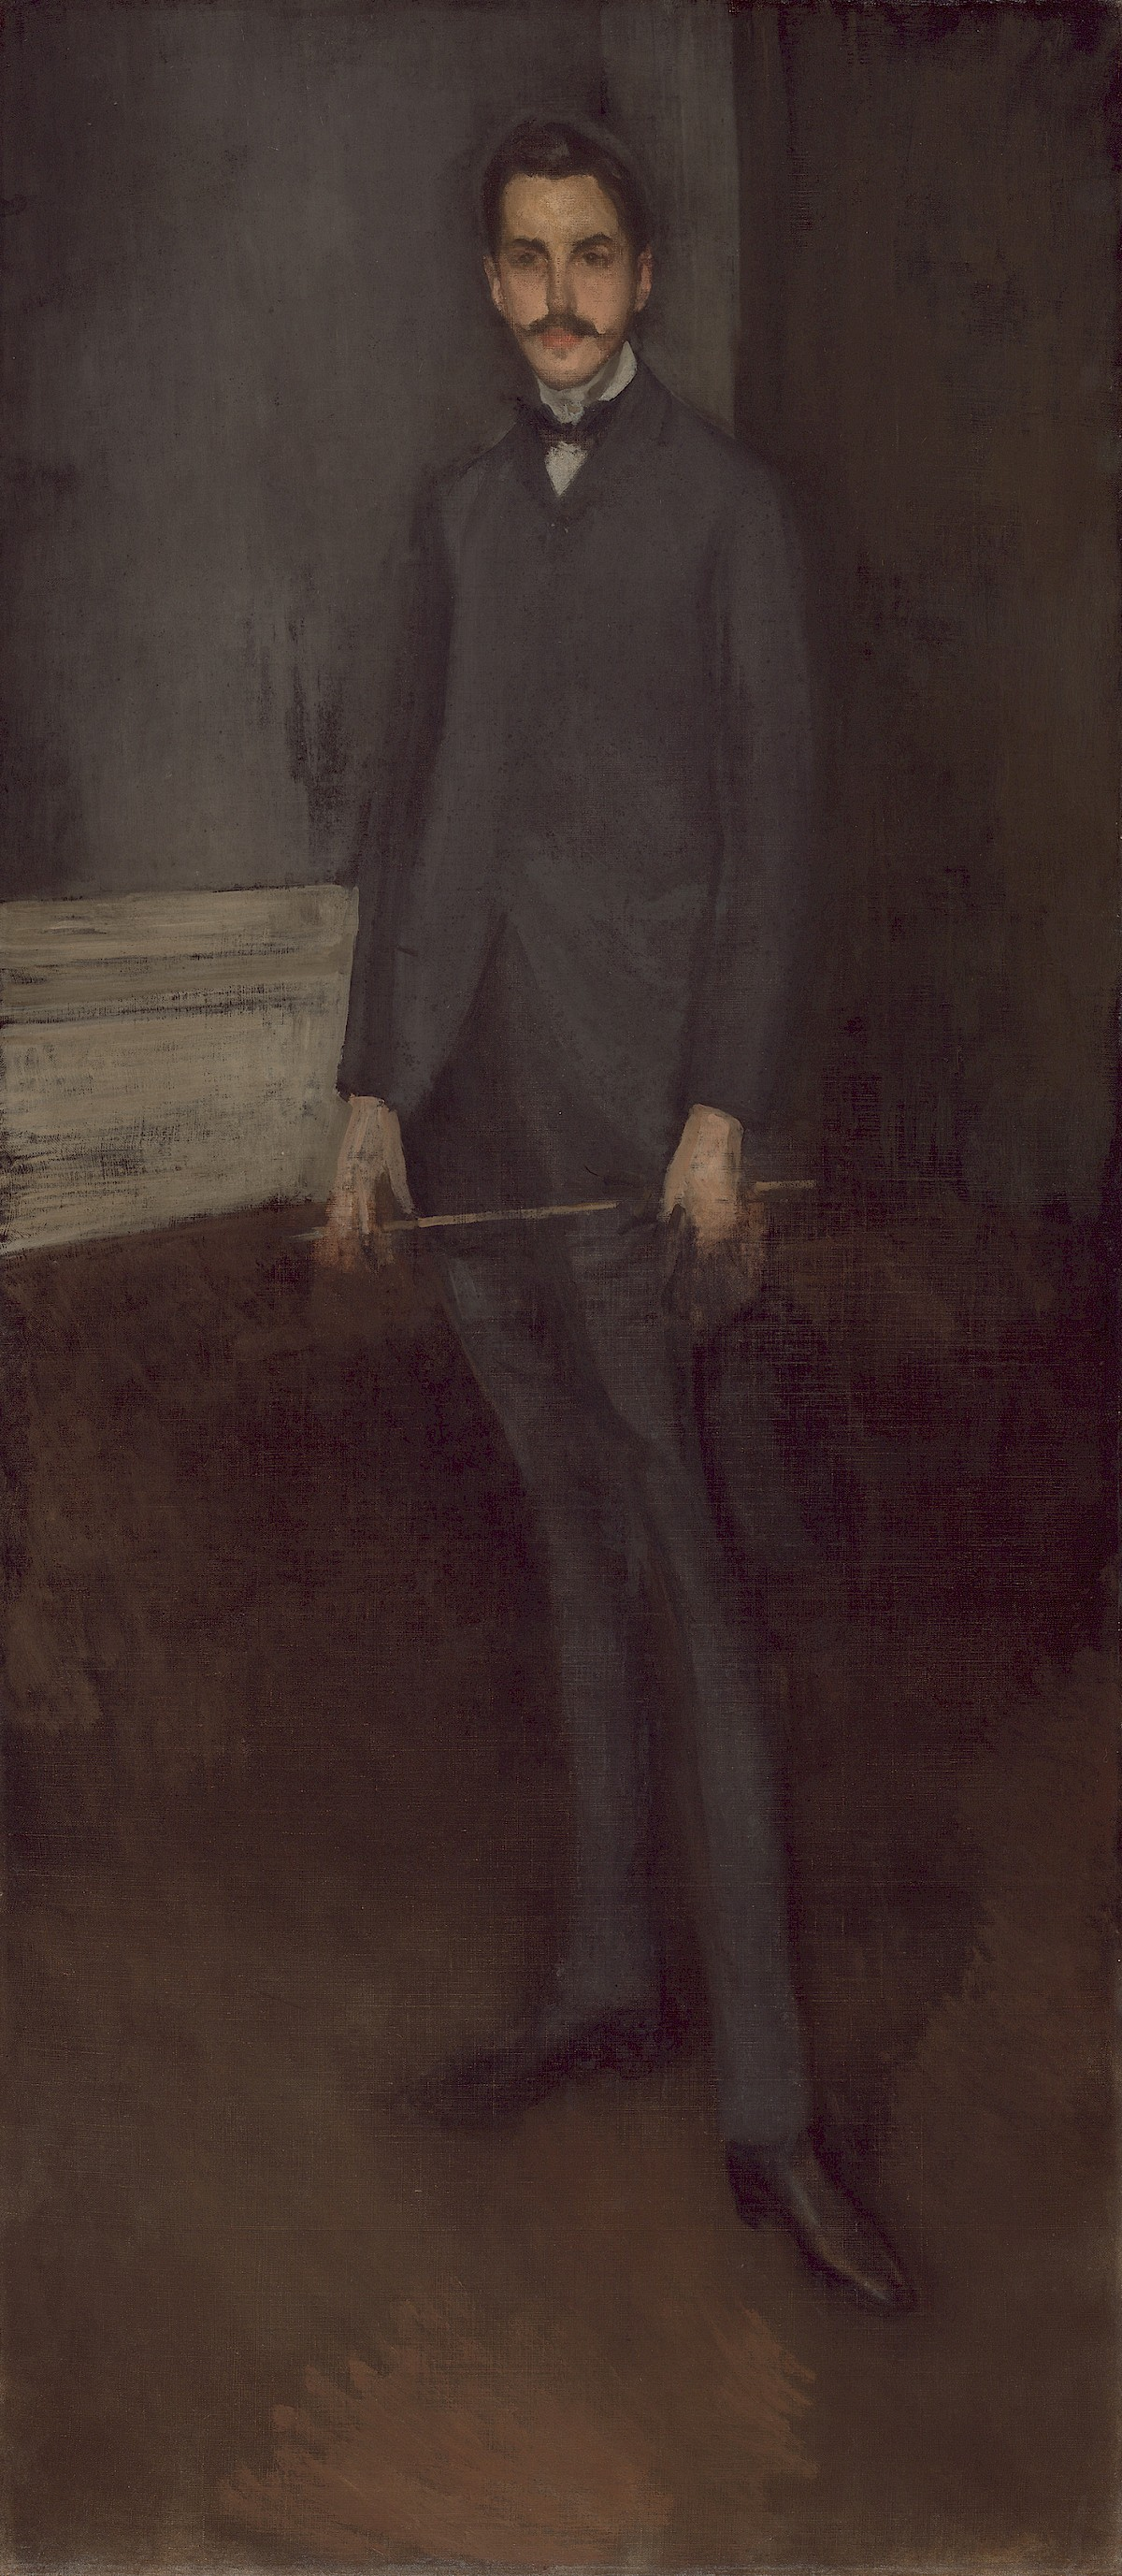 Mother Of Pearl >> Portrait of George W. Vanderbilt by James McNeill Whistler